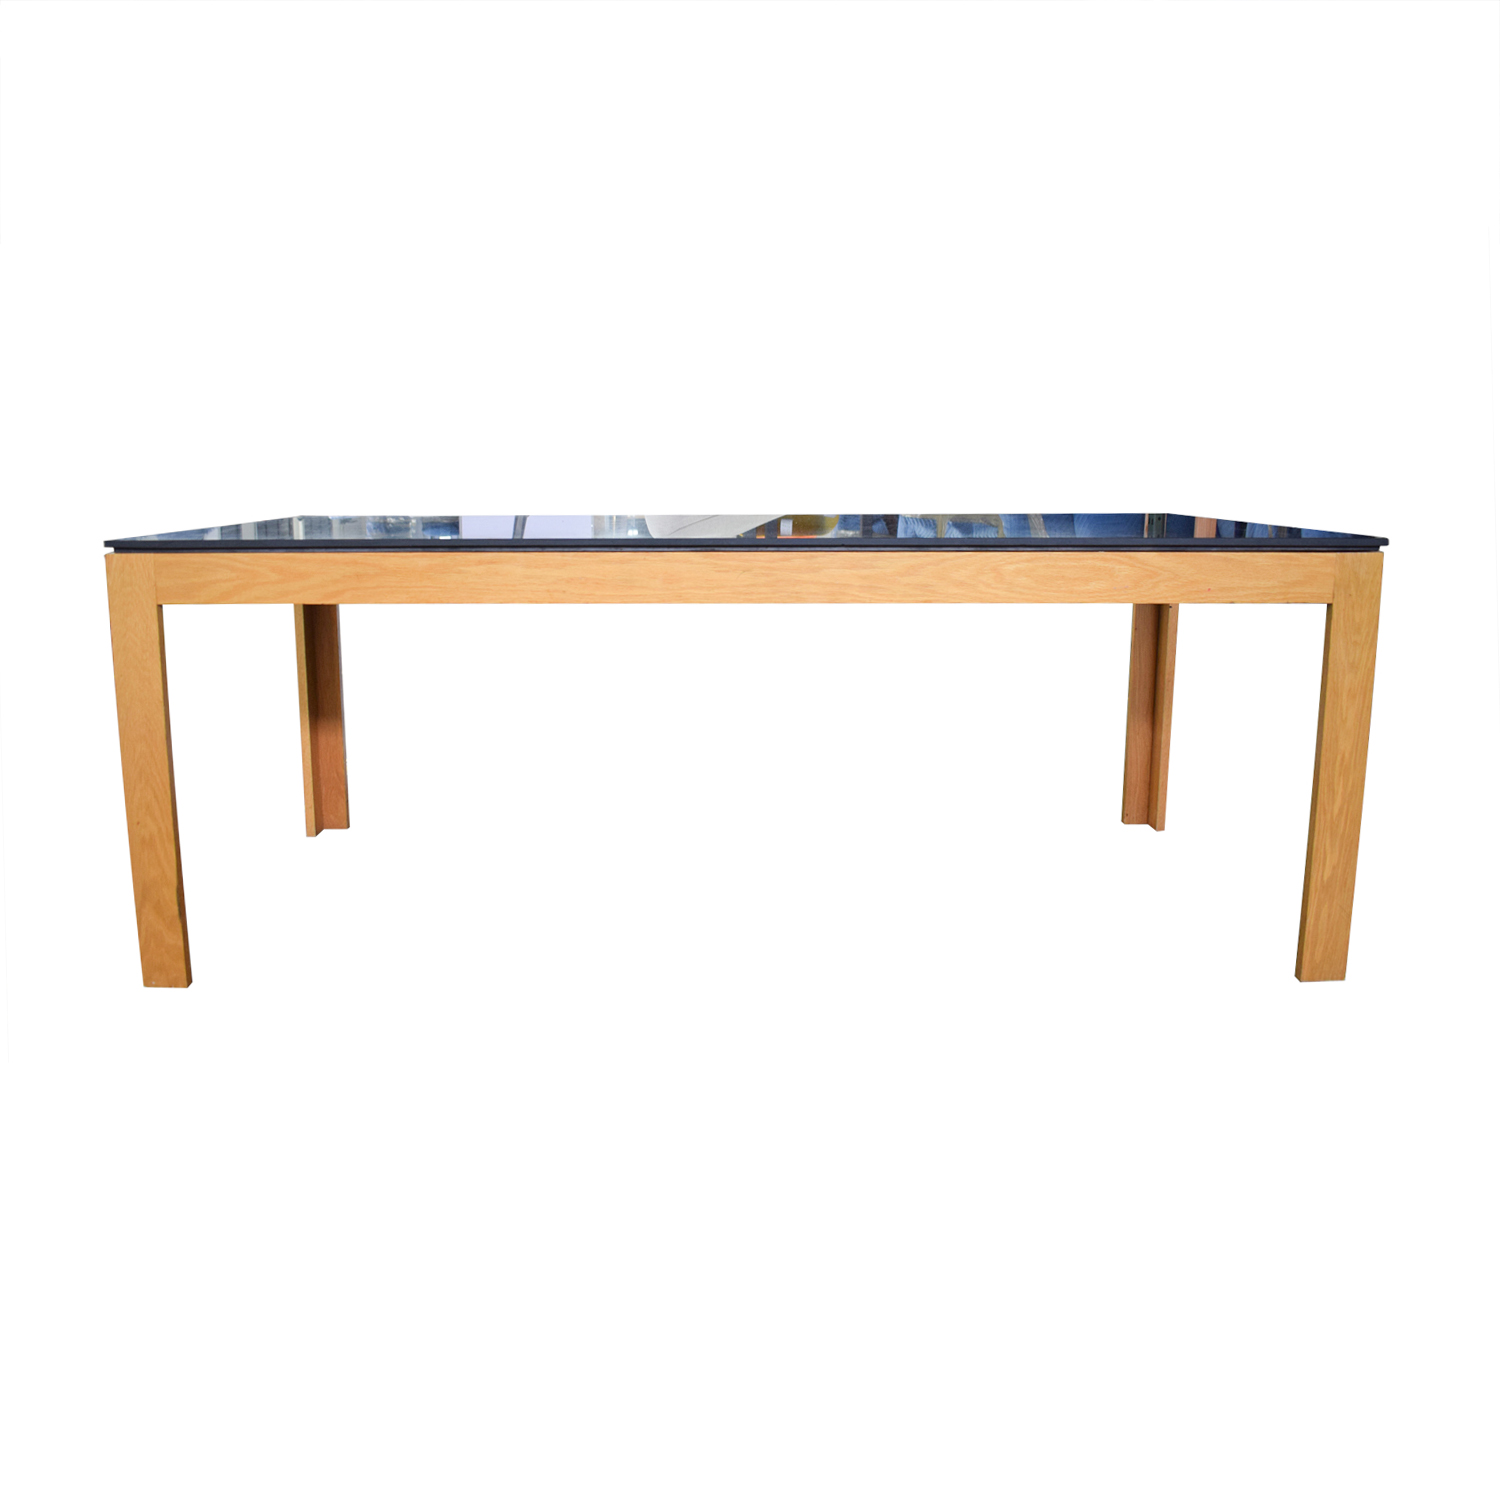 Heal's of London Heal's of London Oak Table with Black Top price